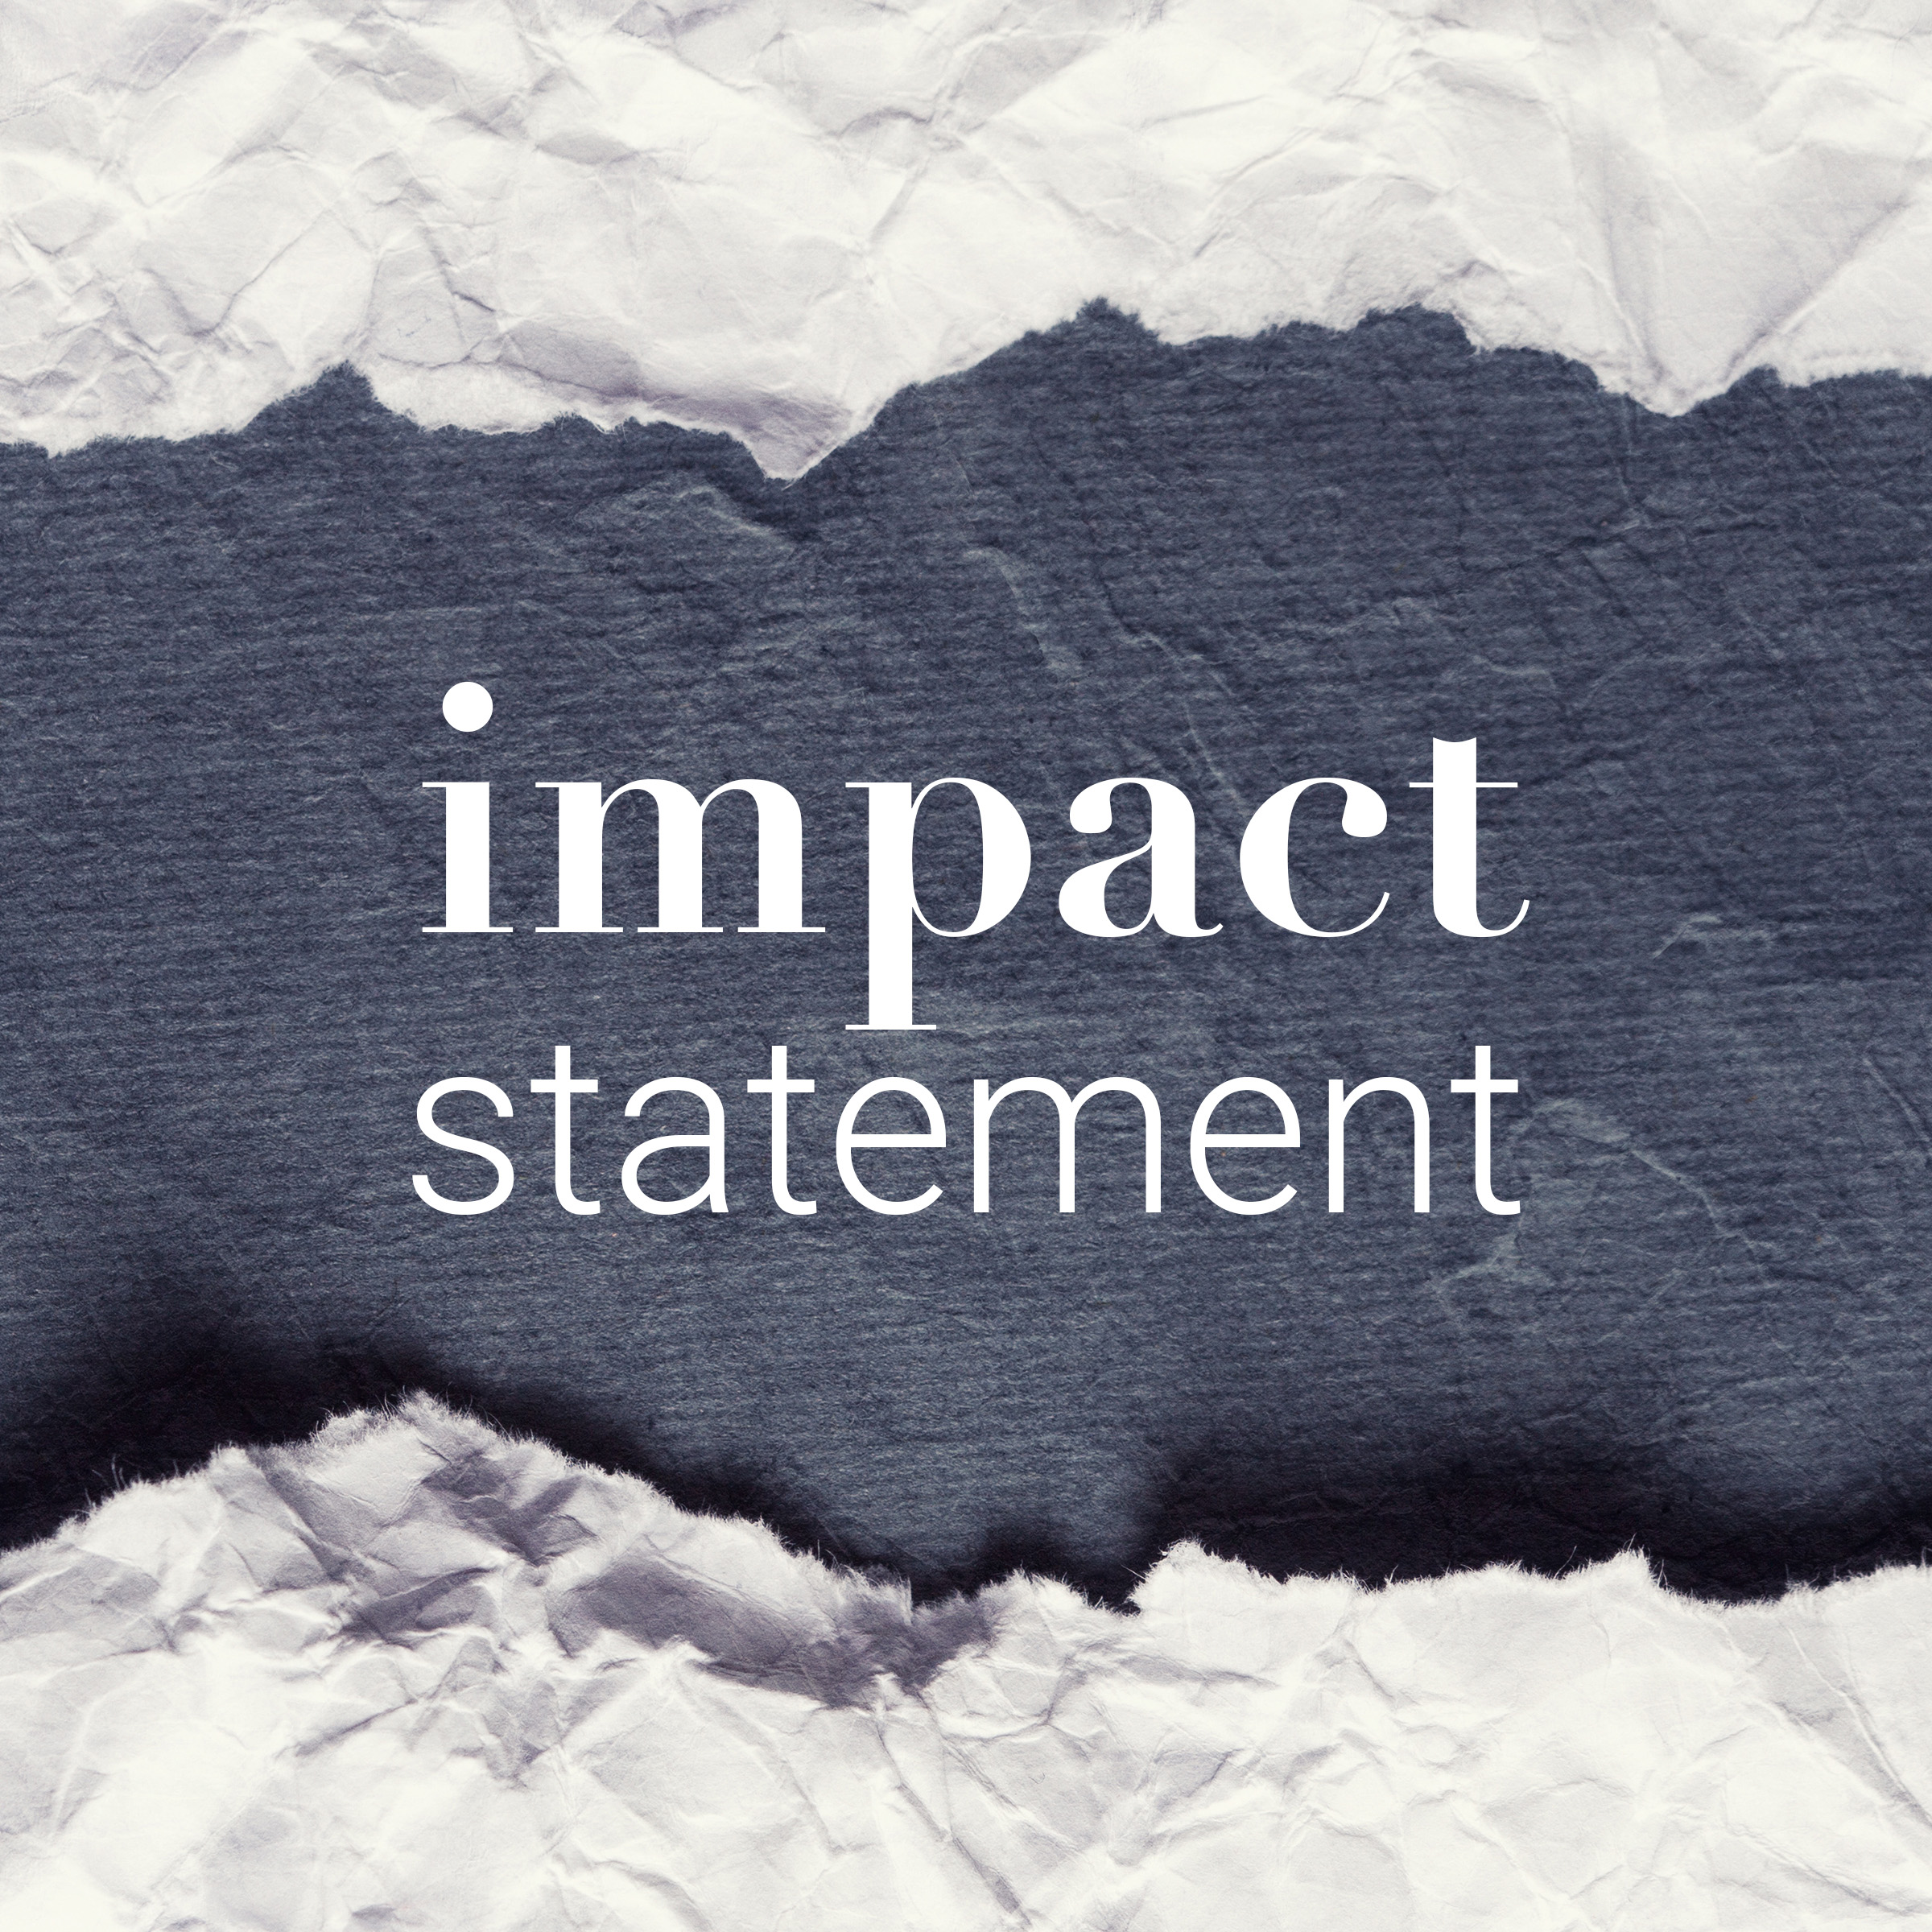 Impact statement - When a crime ends in a conviction, the victims or their families are often allowed to give a statement to the court about the impact of the crime on their lives. But when these life altering events go unsolved, do not end in a conviction, or aren't crimes at all, the victims and their families do not have this opportunity. The stories on this podcast are their Impact Statements.